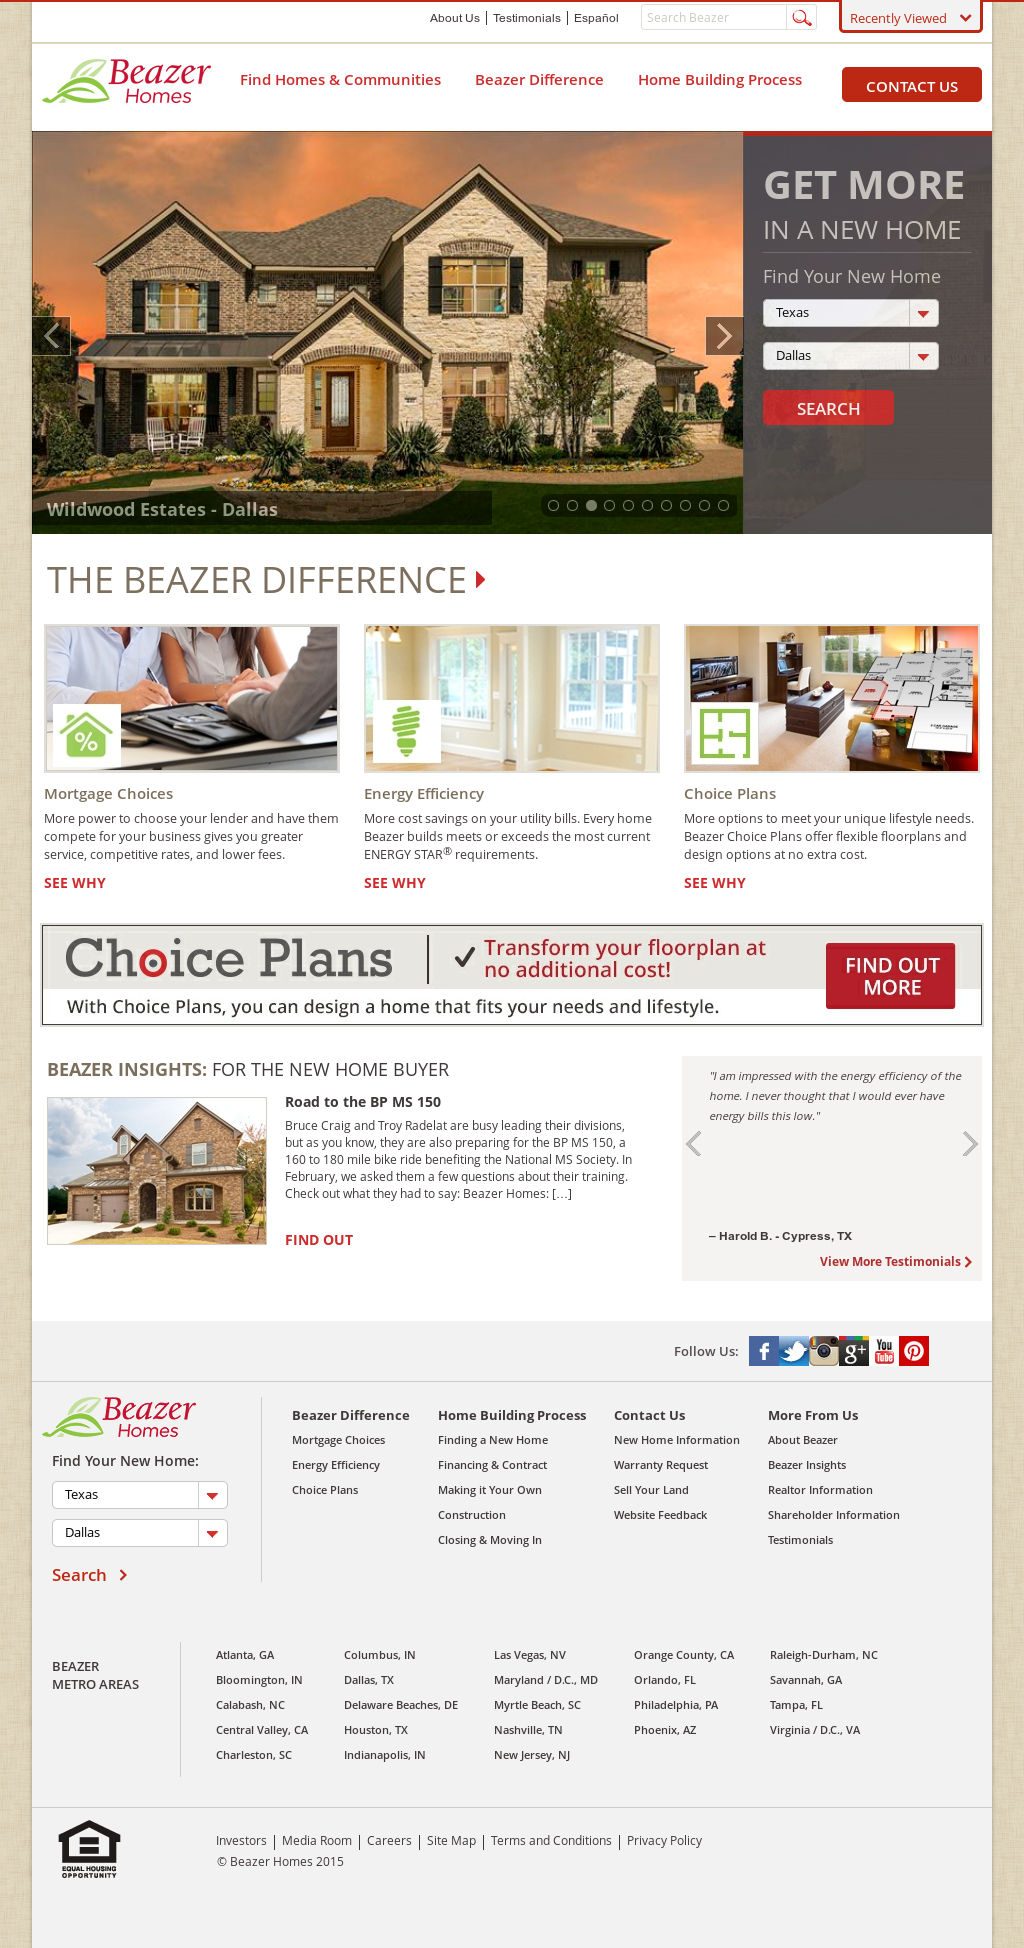 Beazer Homes Competitors, Revenue and Employees - Owler Company Profile